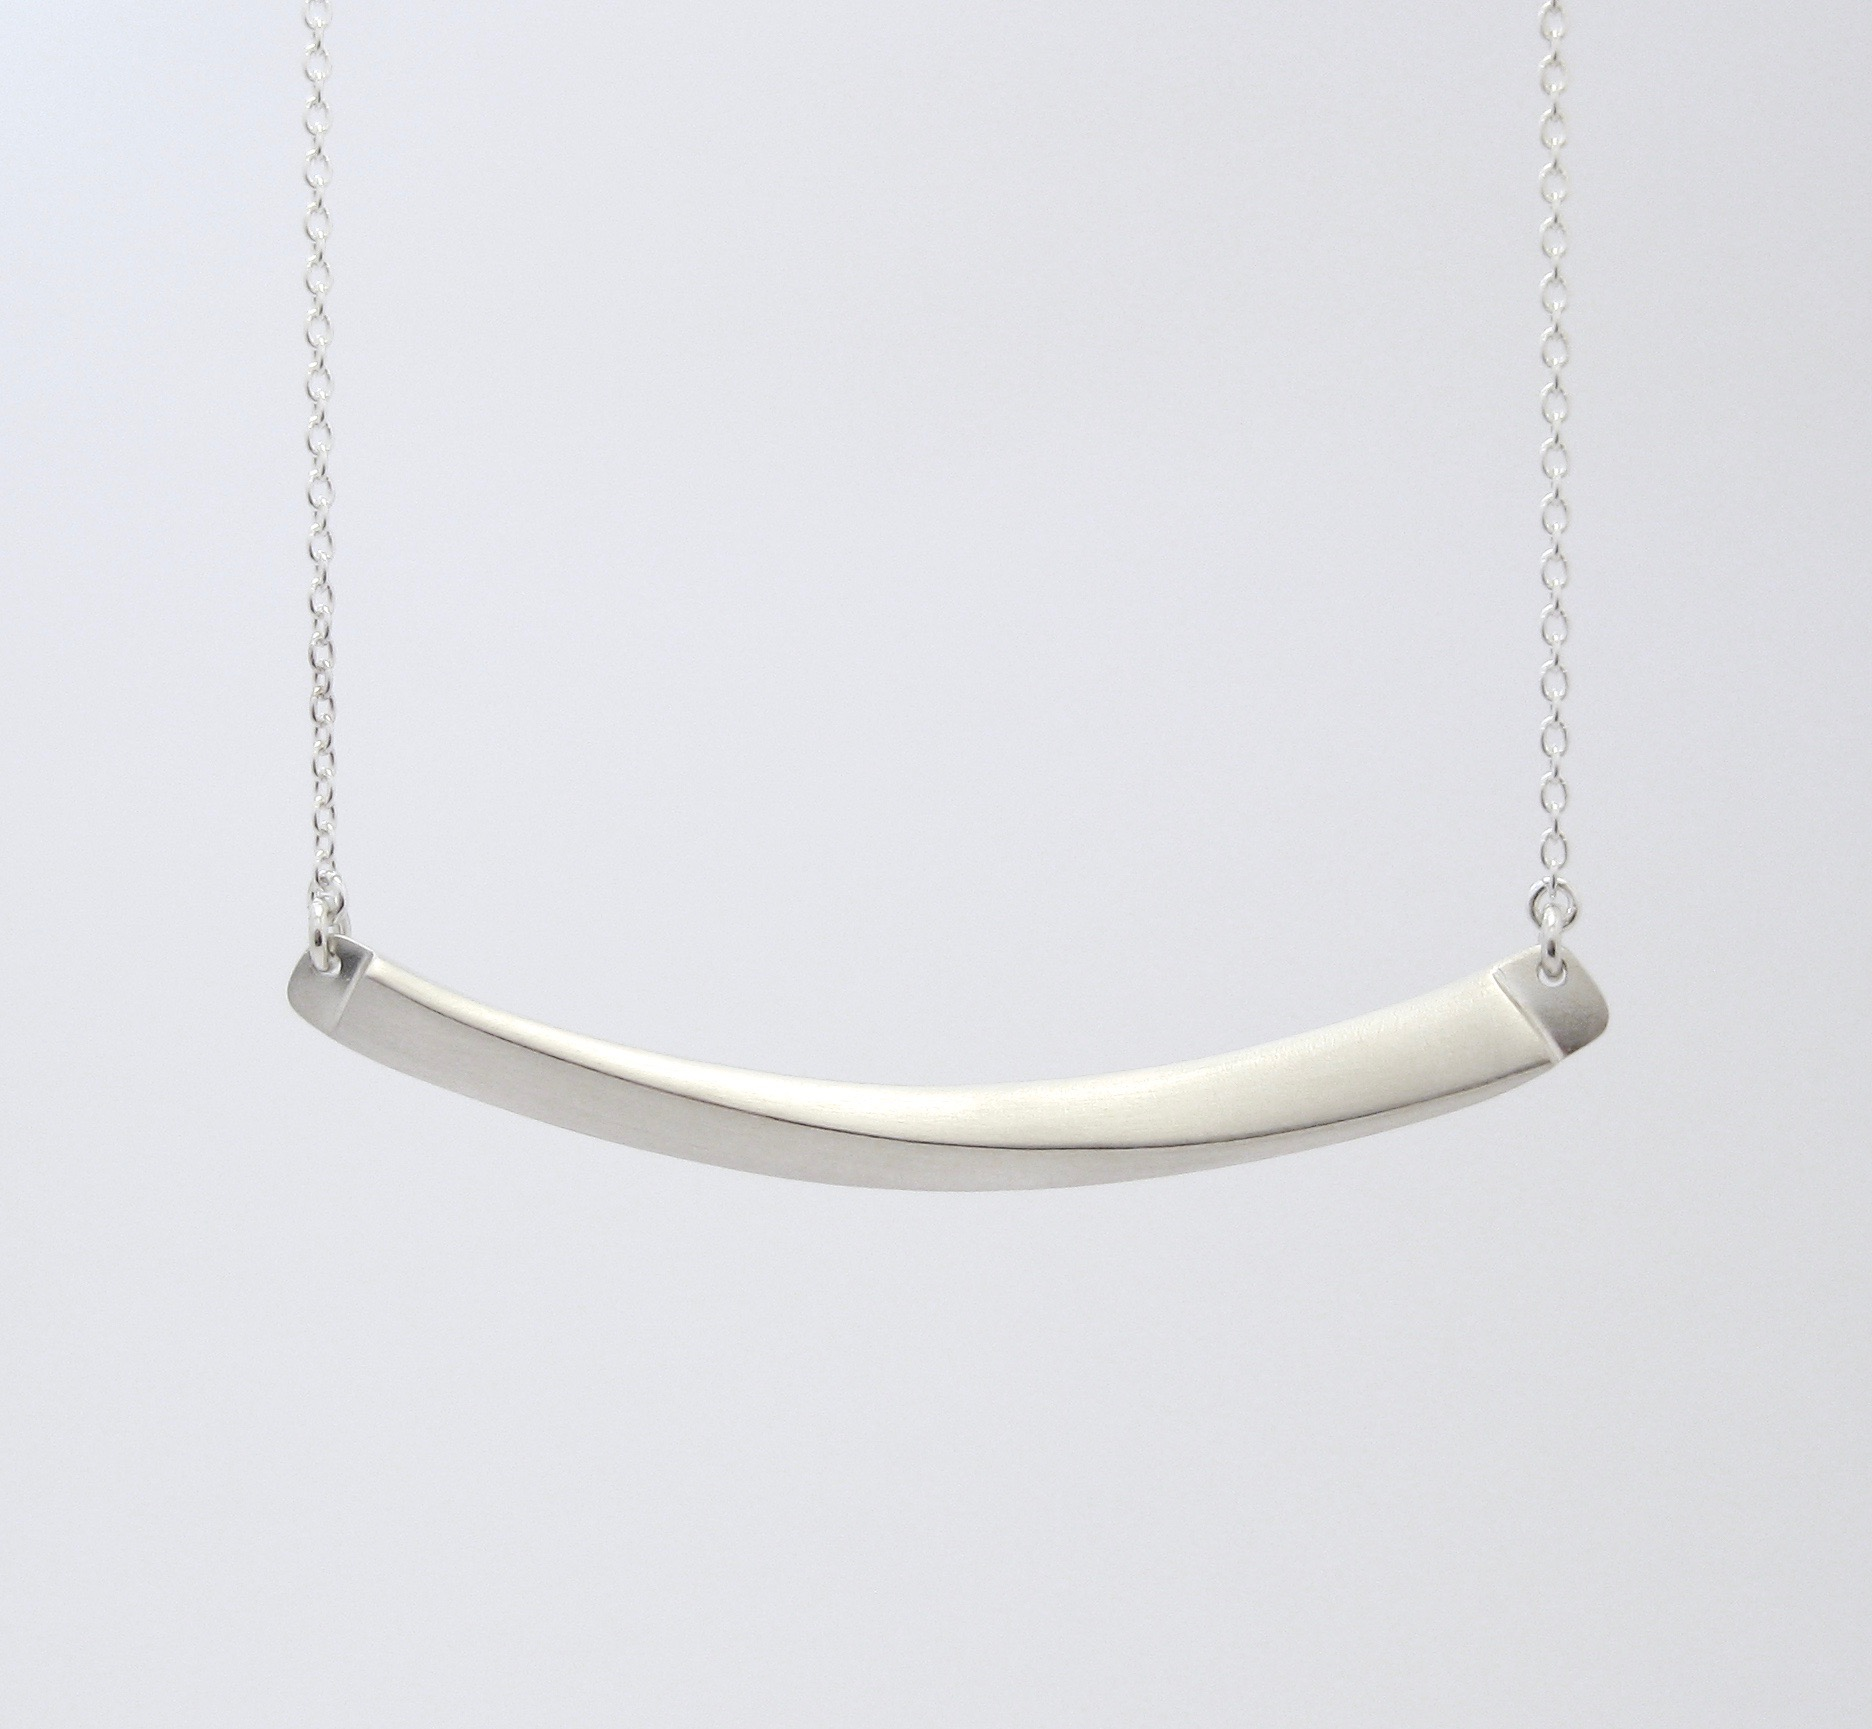 Horizon Line Necklace, sterling silver, 2016